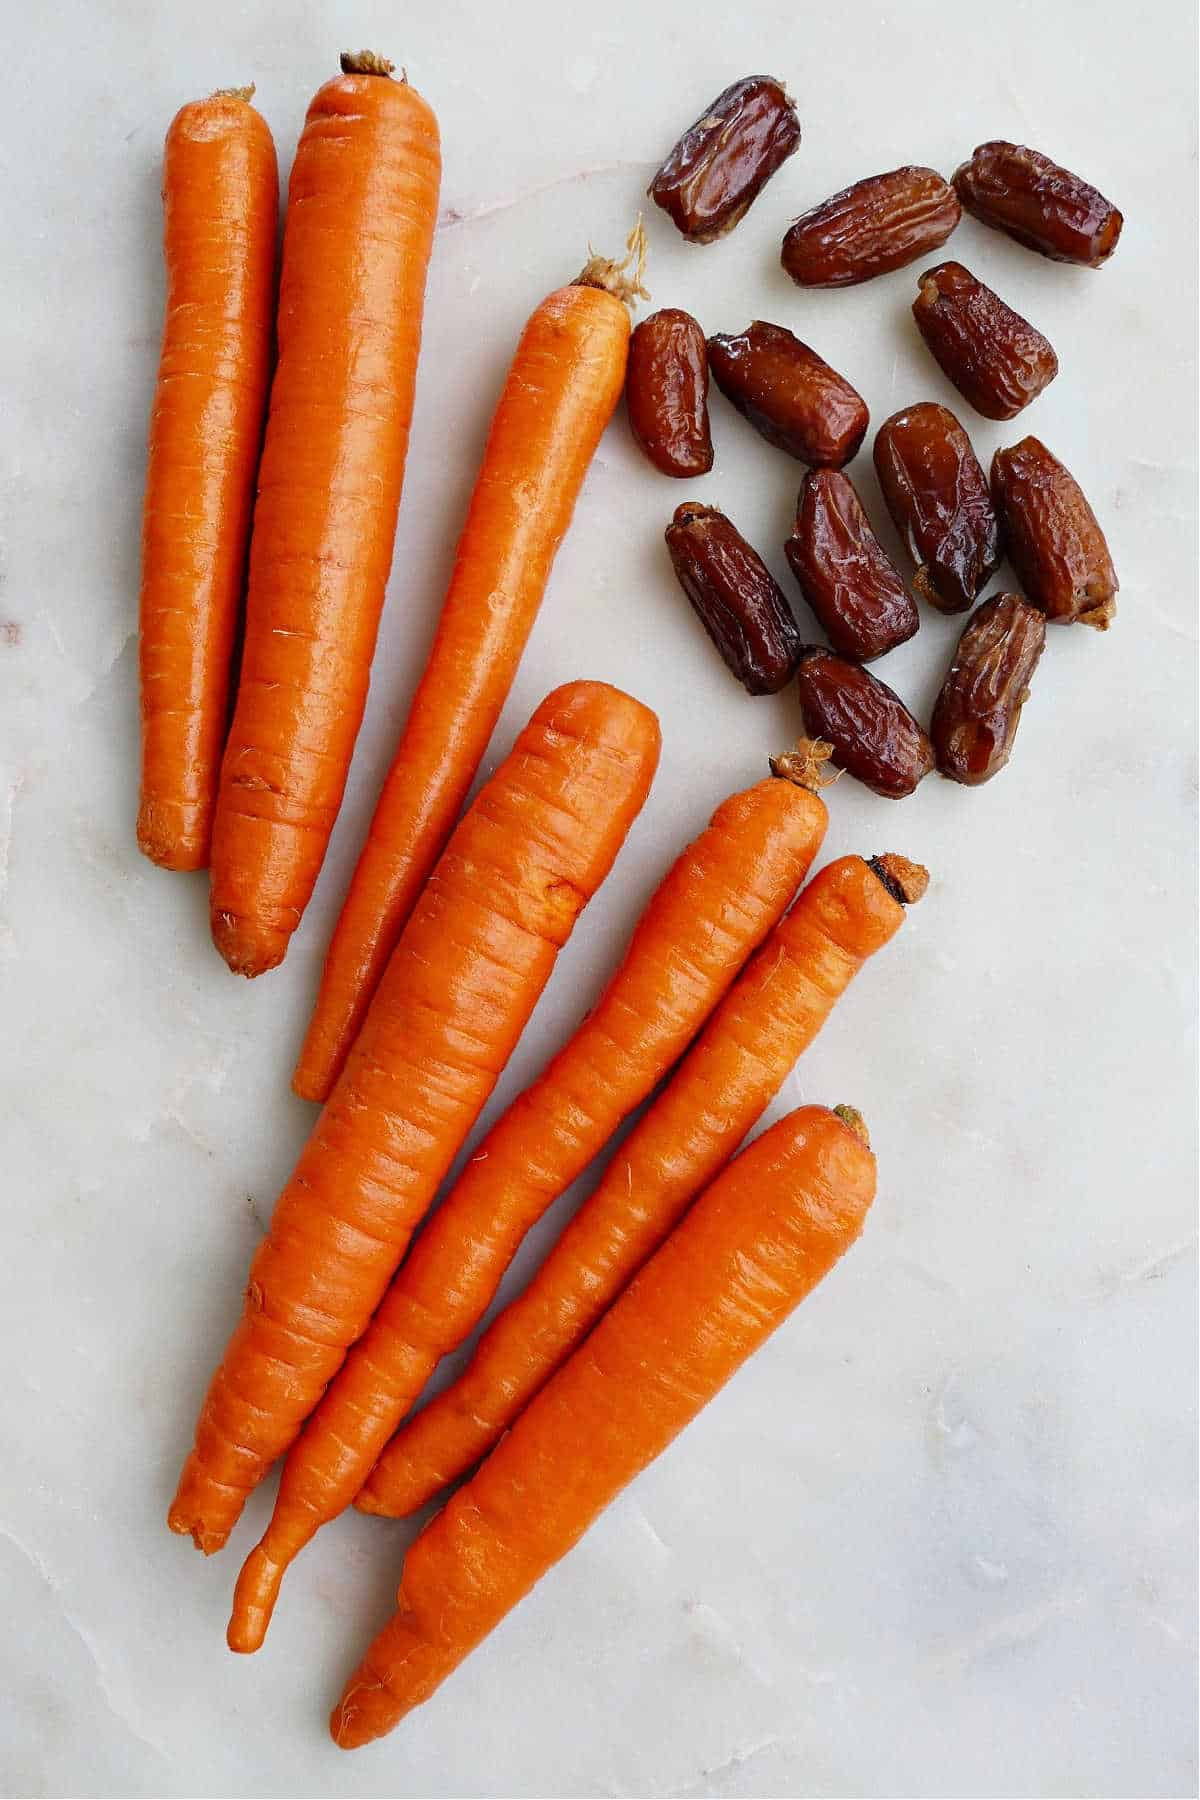 7 carrots next to 10 dates on a white counter